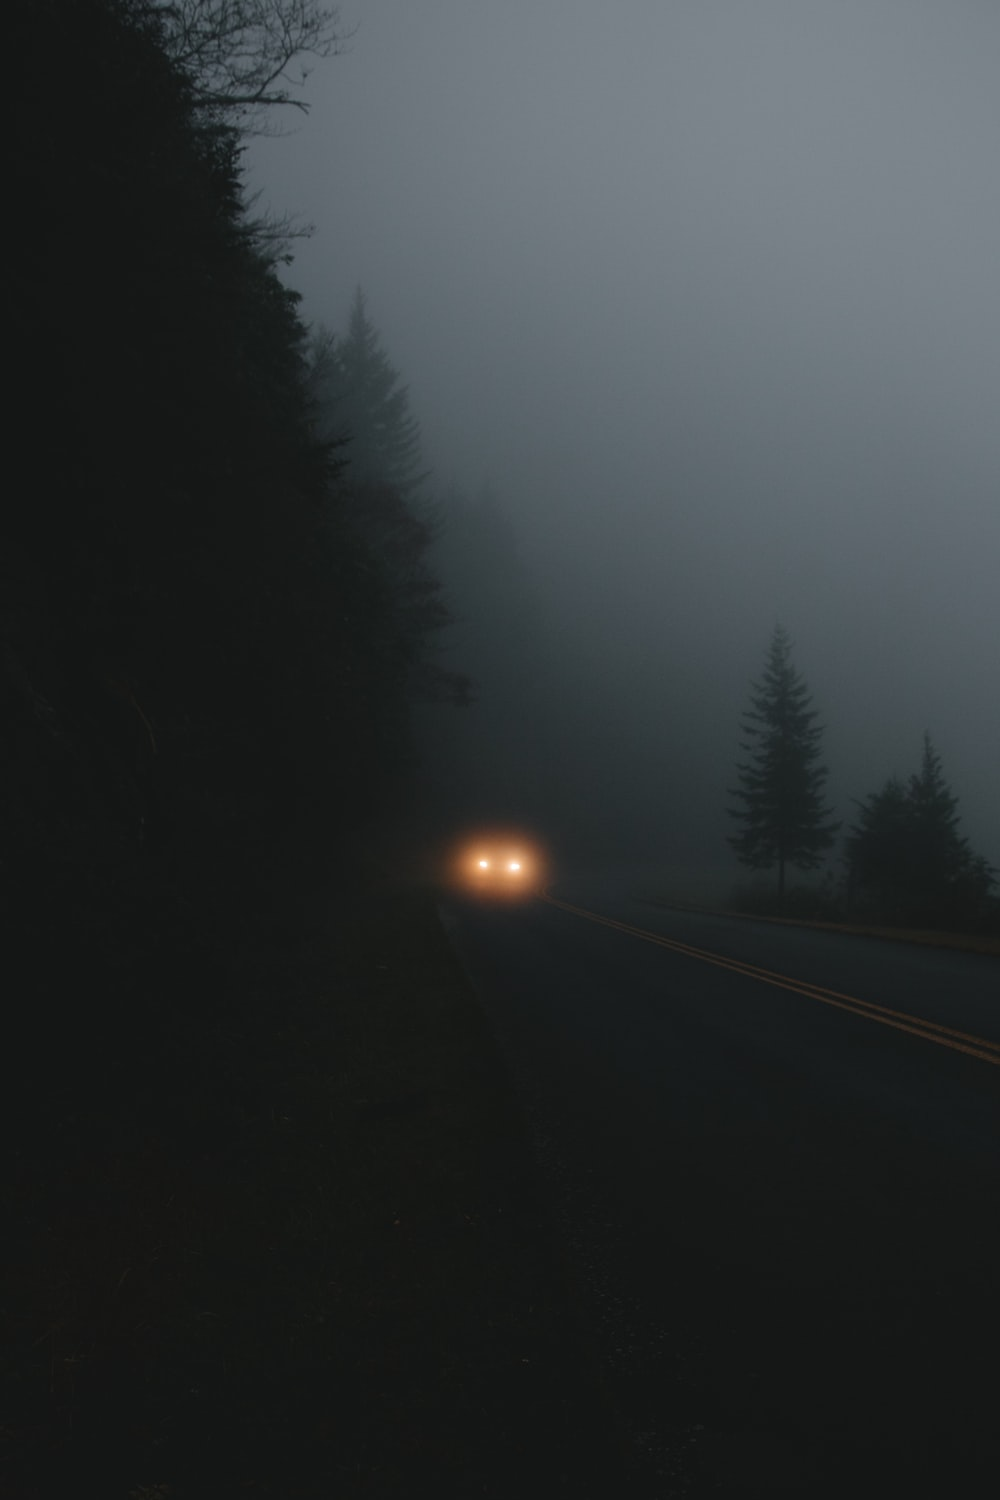 vehicle on road during nighttime